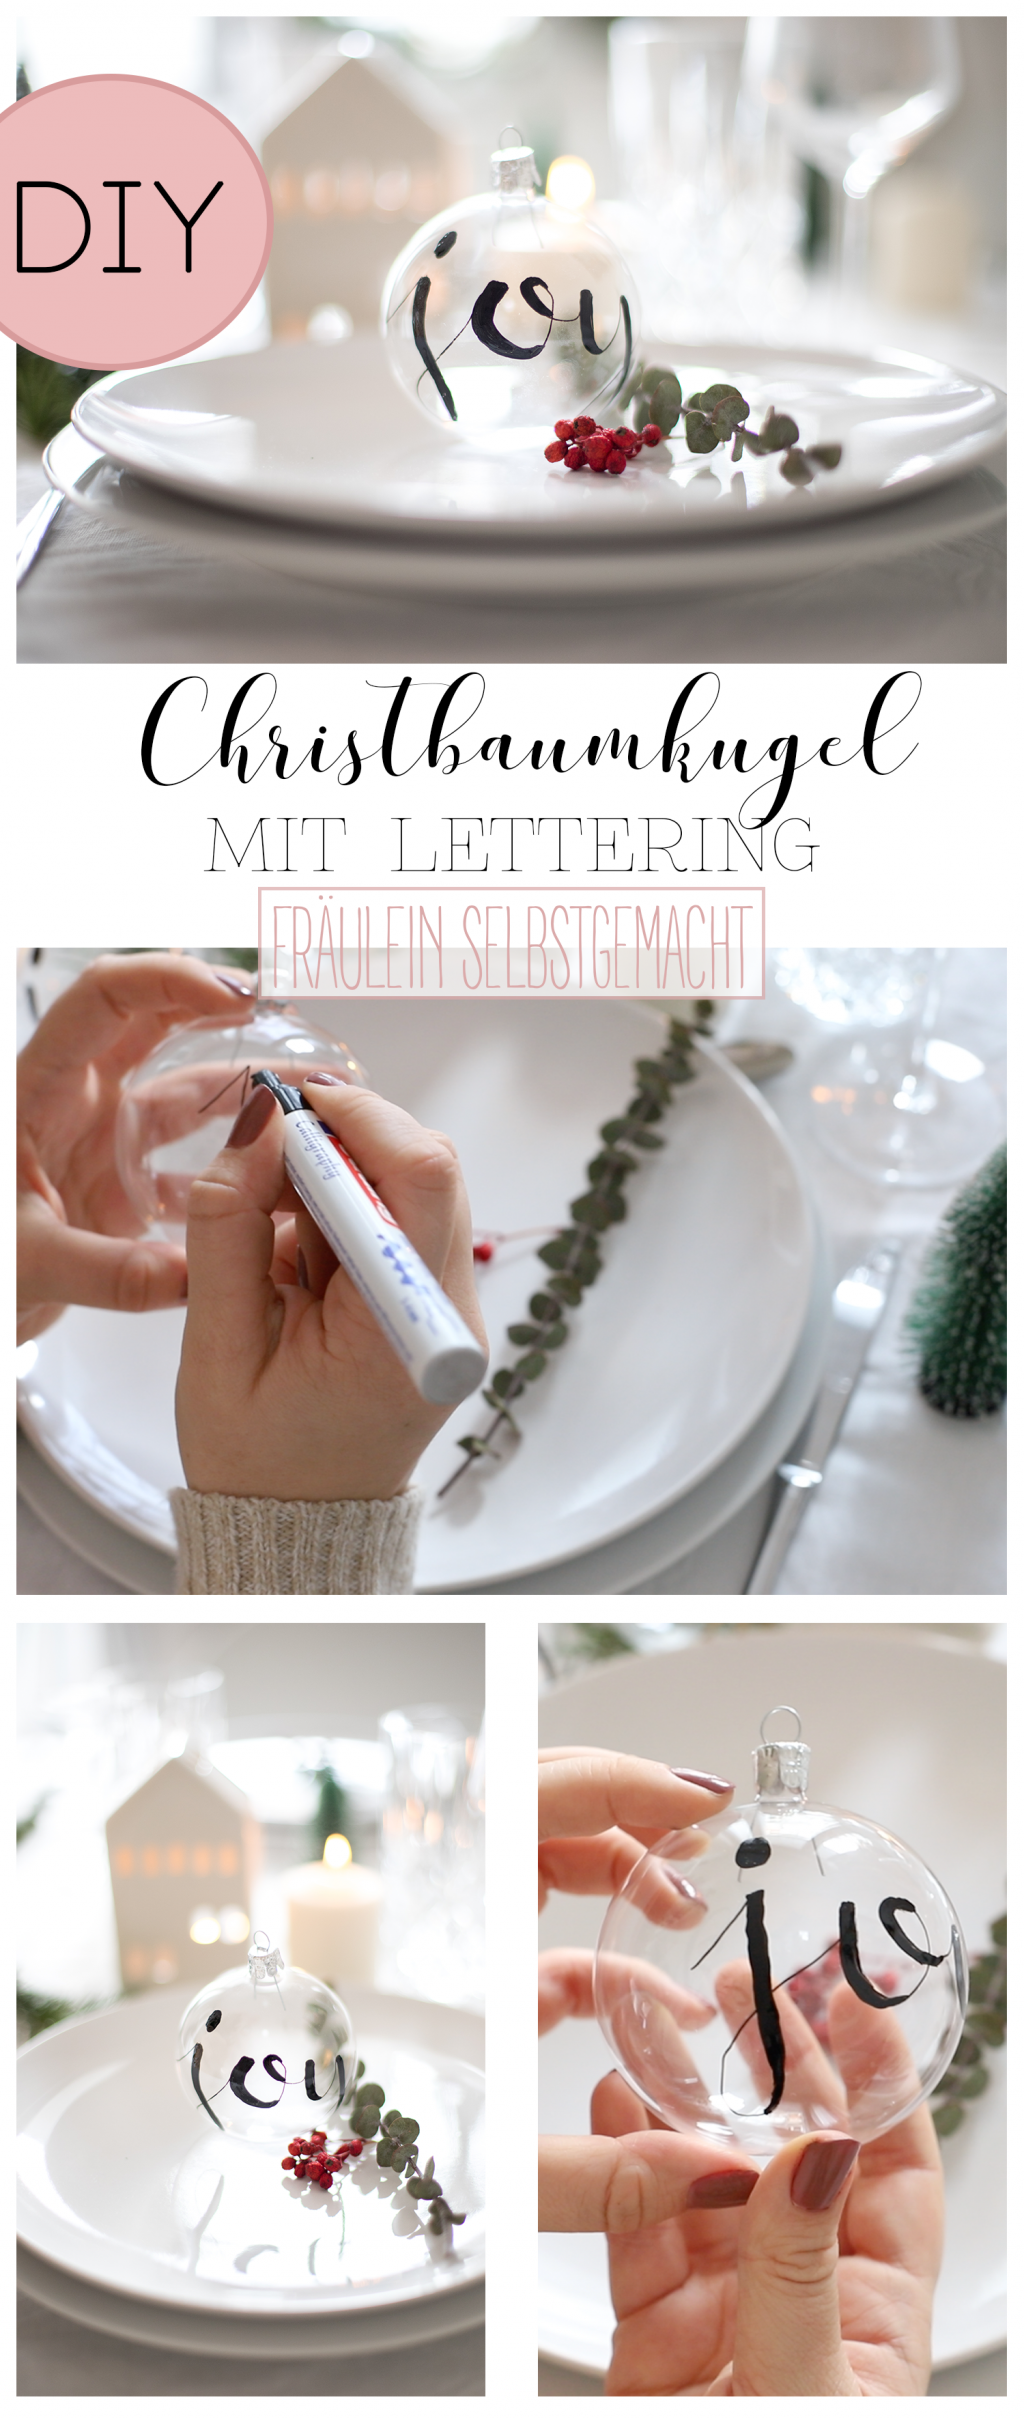 Christbaumkugel mit Lettering